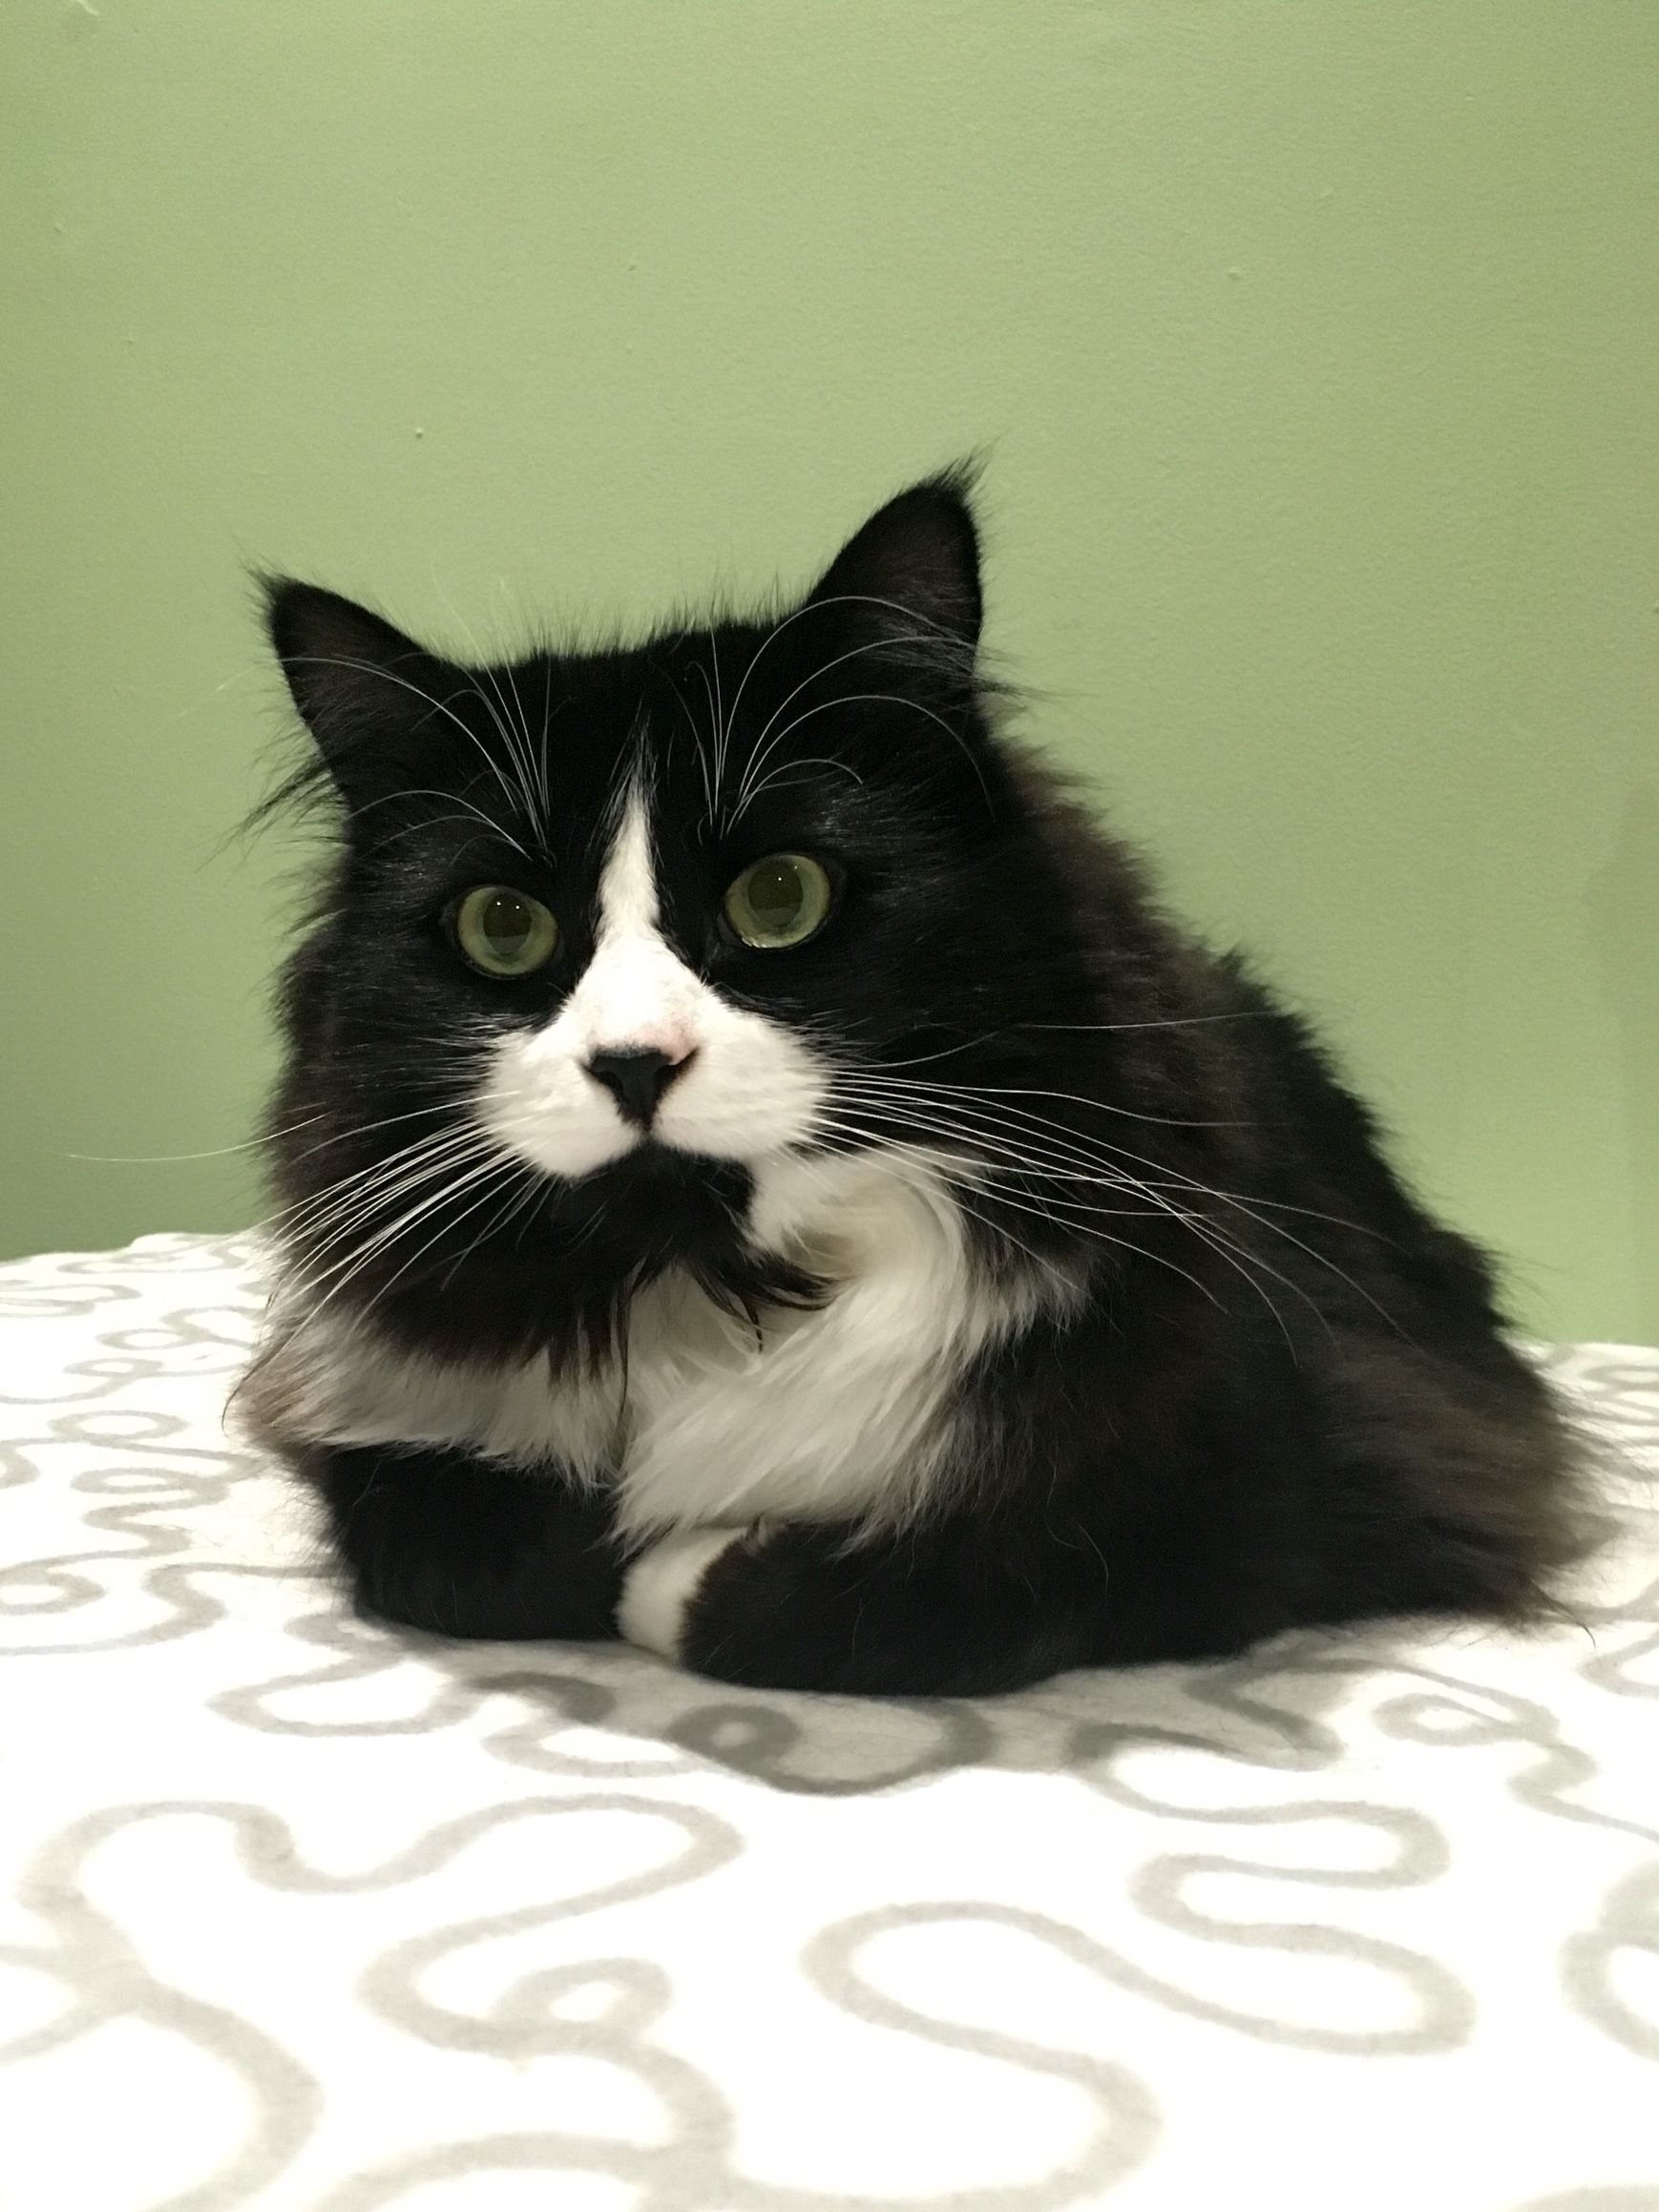 My Vet Tells Me That Most Tuxedo Cats Have Pink Noses But Coco